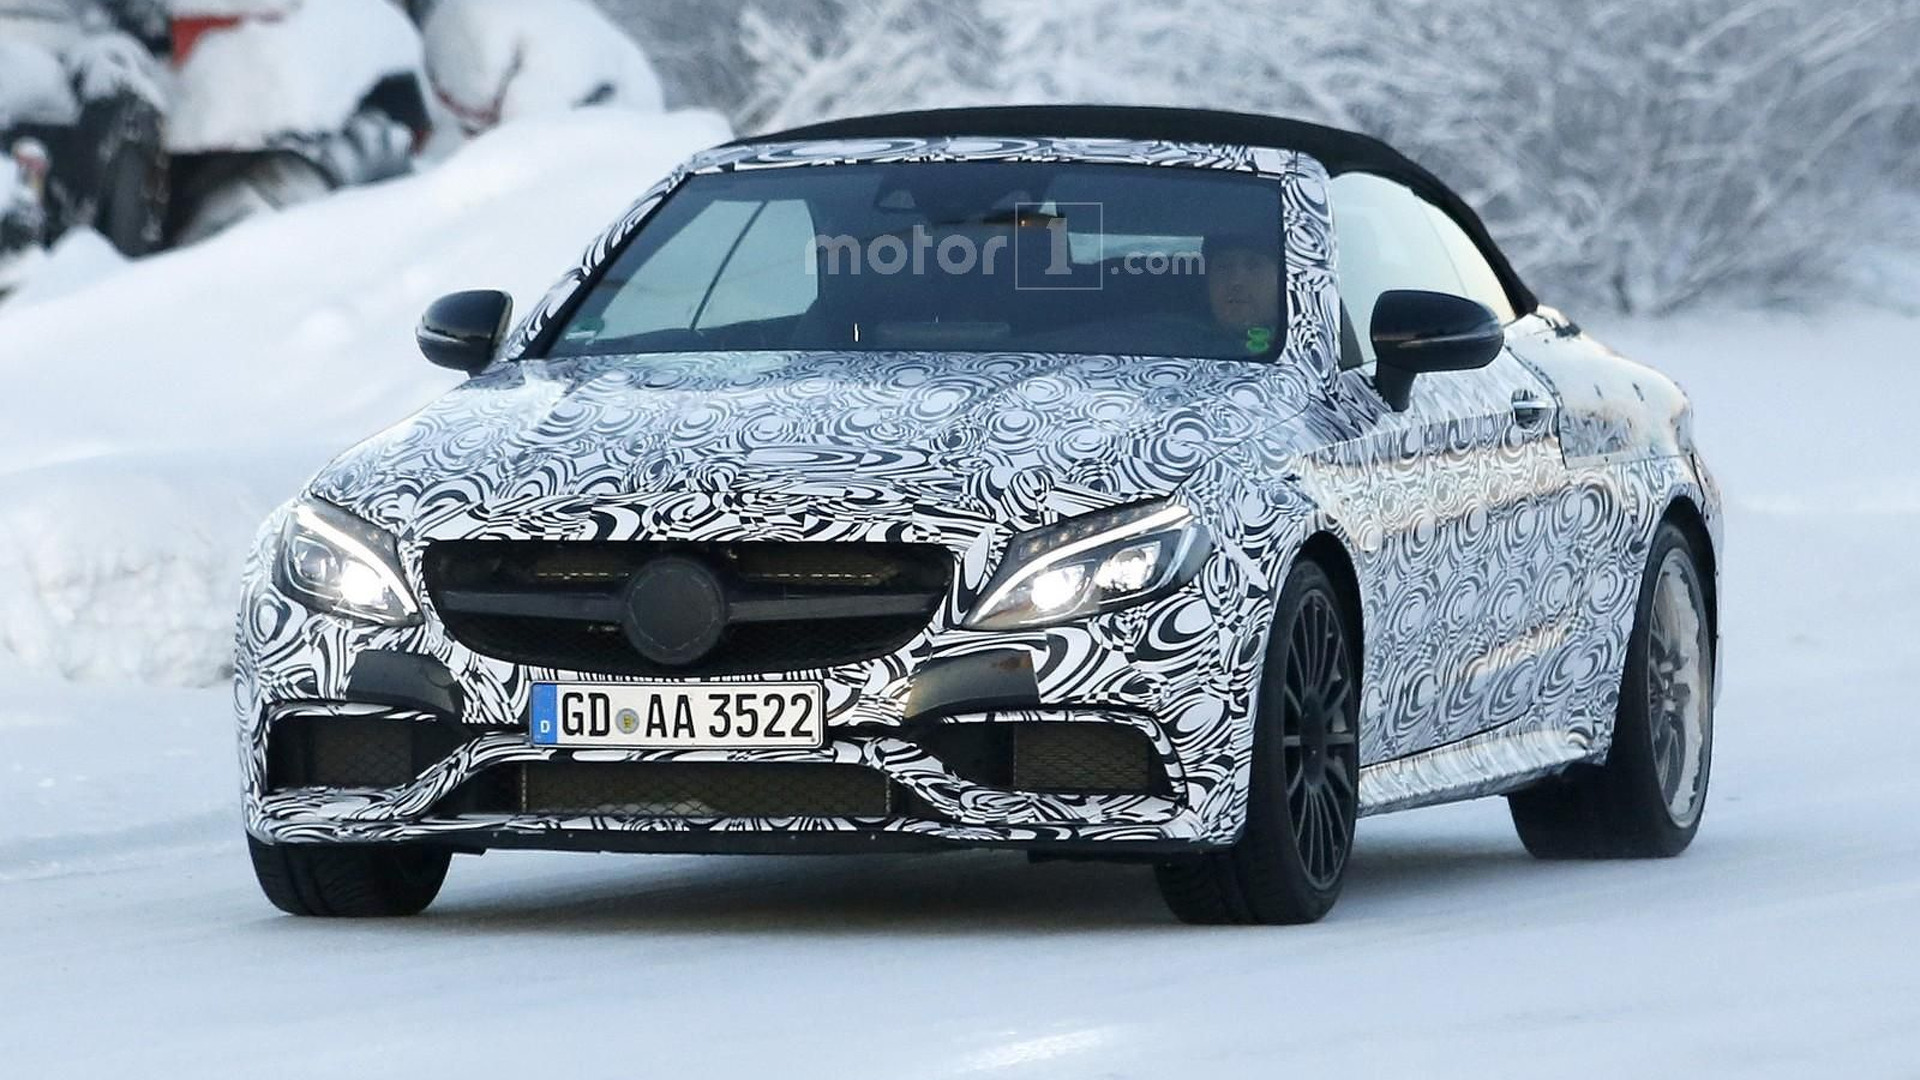 Mercedes-AMG C63 Convertible spied, will have up to 503 hp